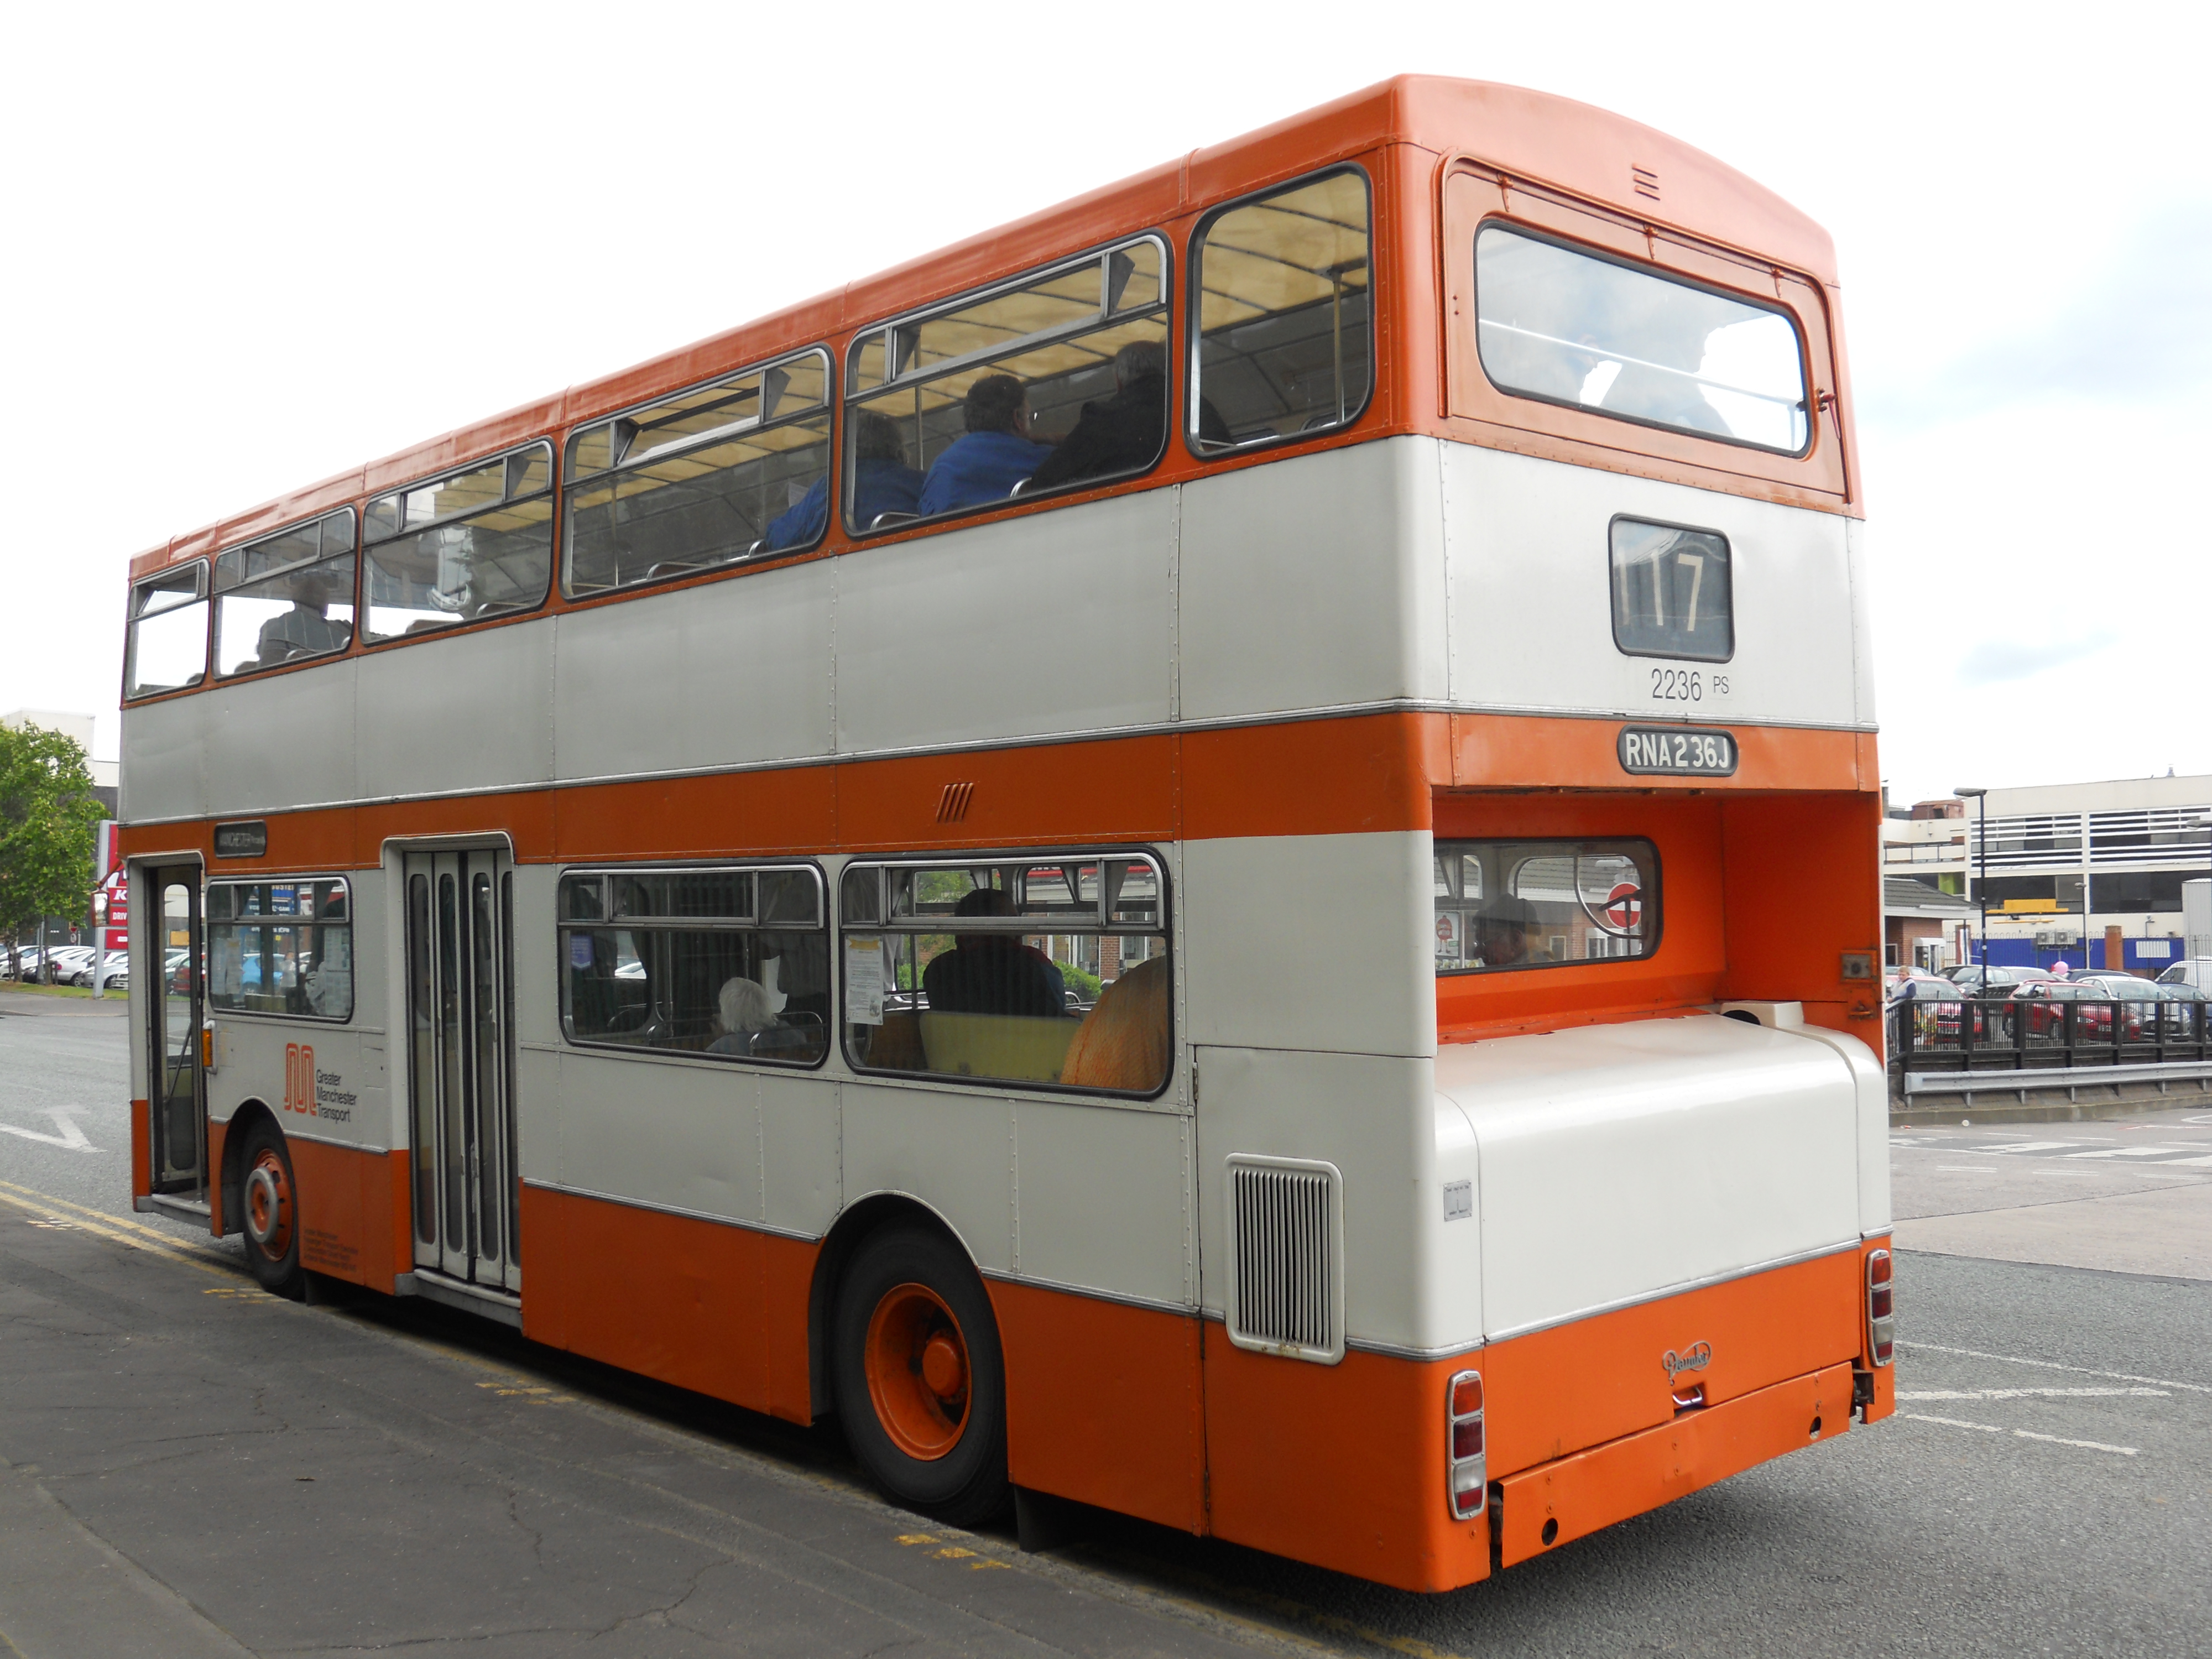 File:Preserved Greater Manchester Transport bus 2236 (RNA 236J) 1971  Daimler Fleetline Park